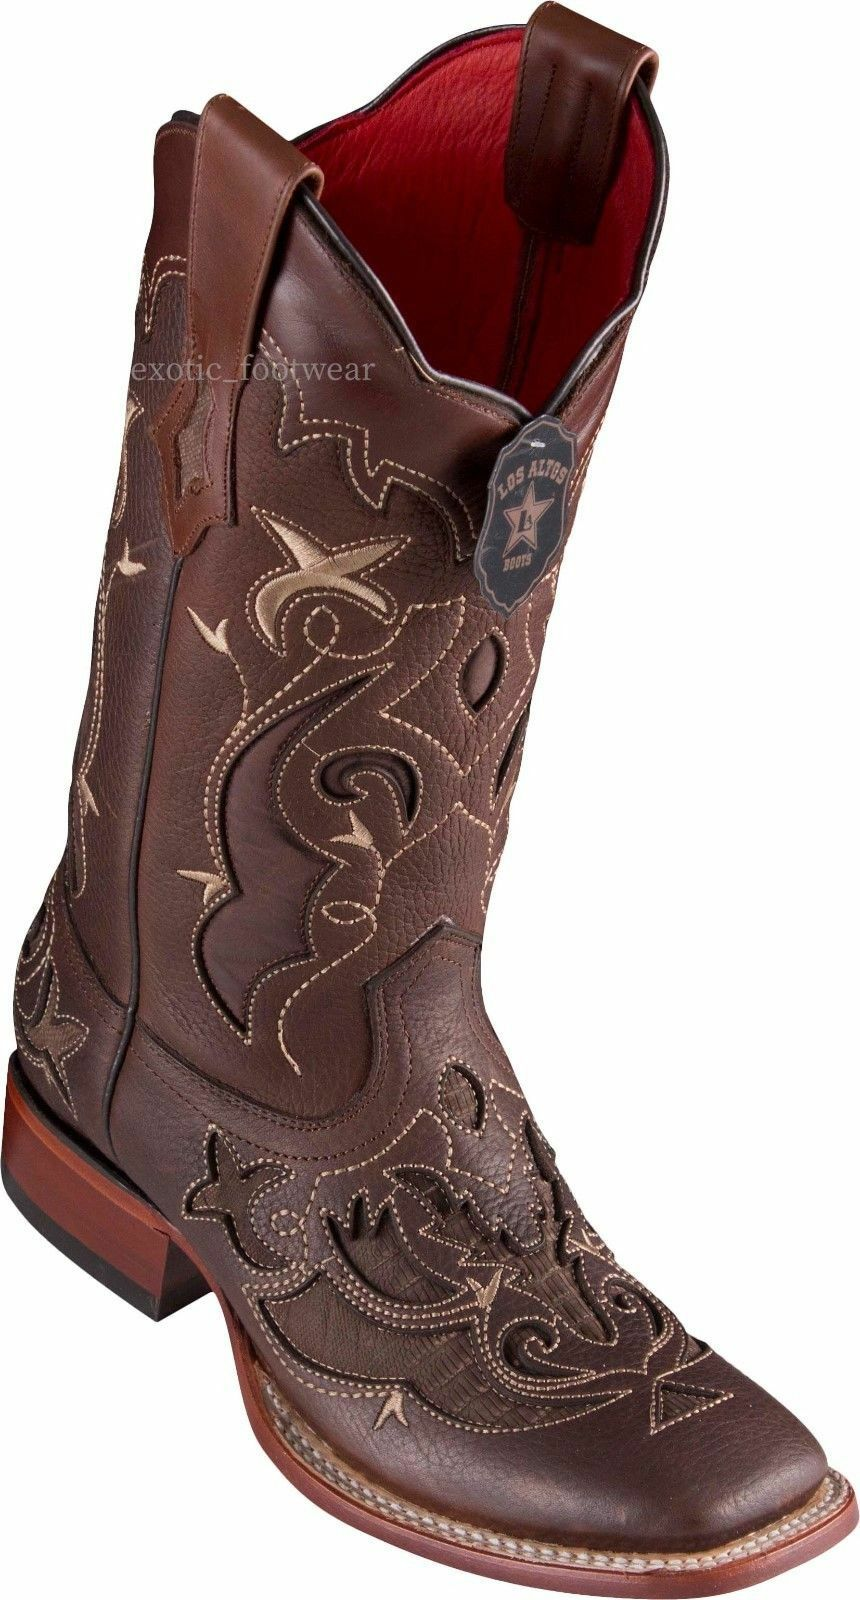 WOMEN WOMEN WOMEN LOS ALTOS BROWN LIZARD OVERLAY RANCH-SQUARE-TOE WESTERN BOOT 55514f